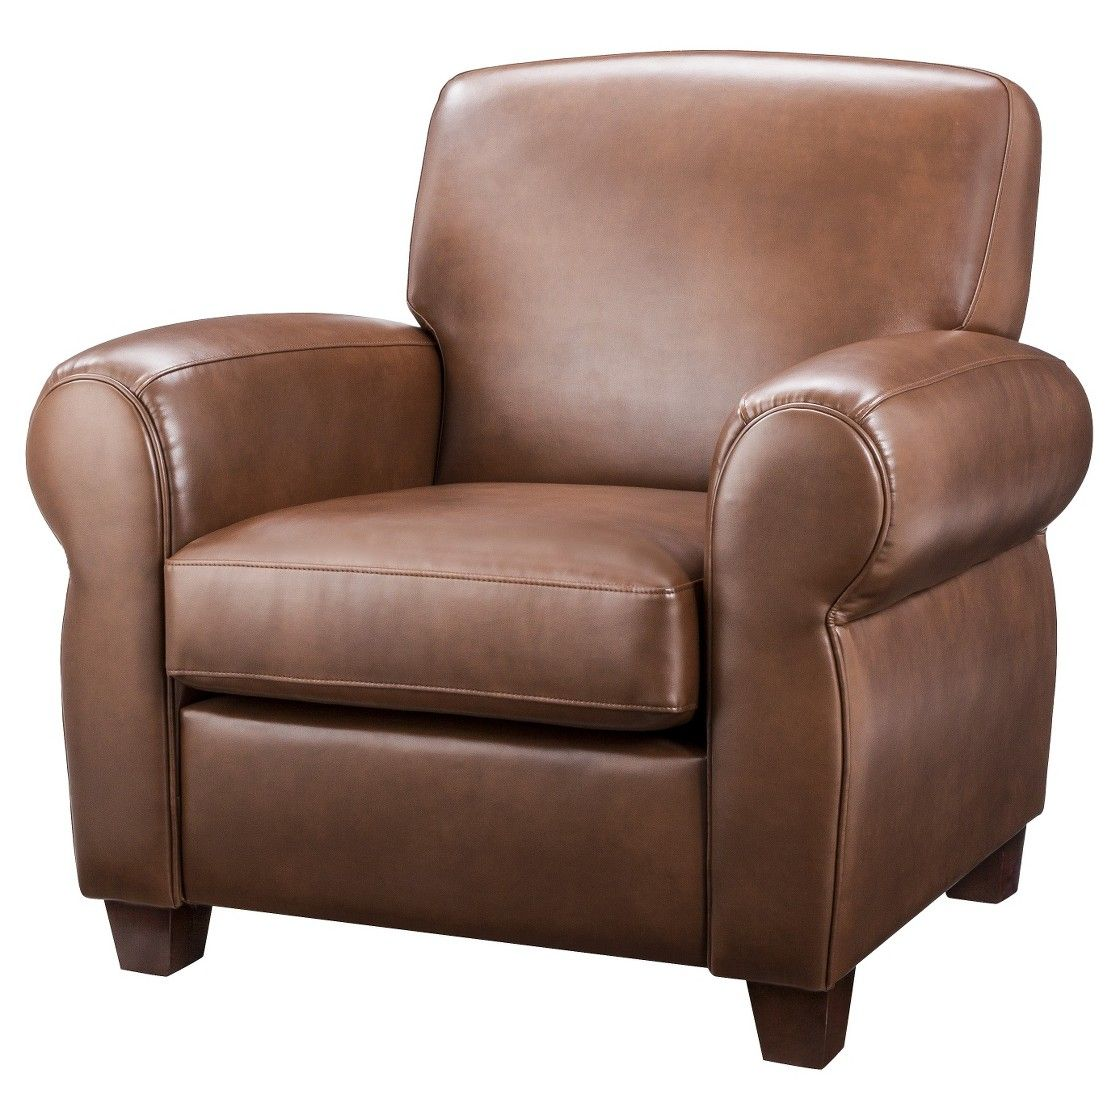 Shop for espresso leather chair at Target